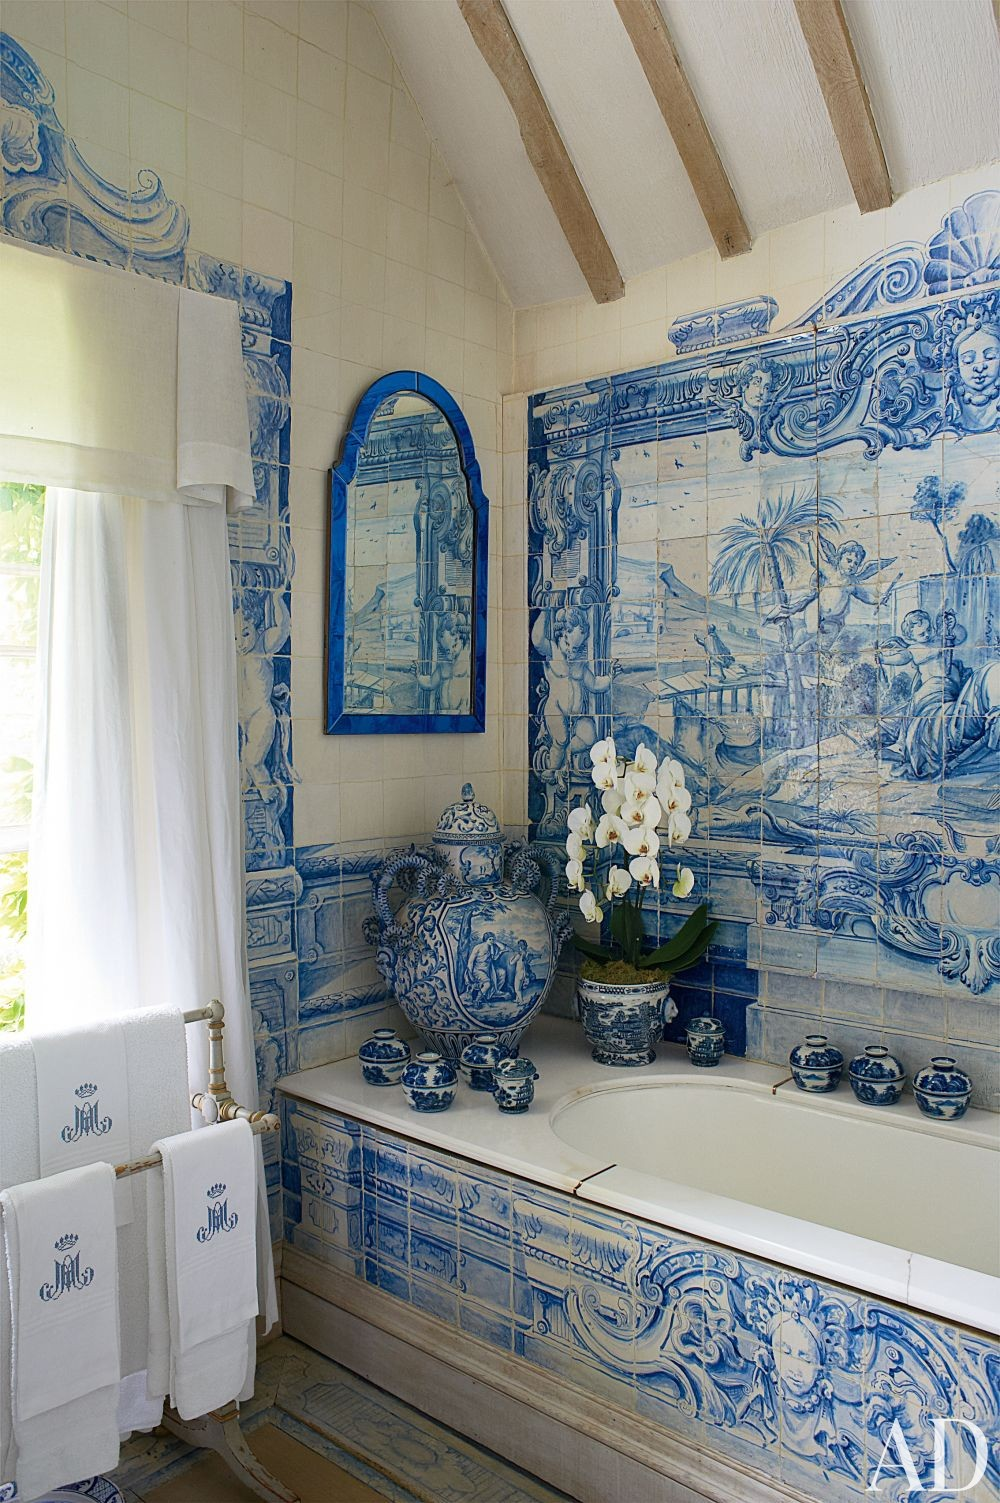 French Blue and White Bathroom Tiles